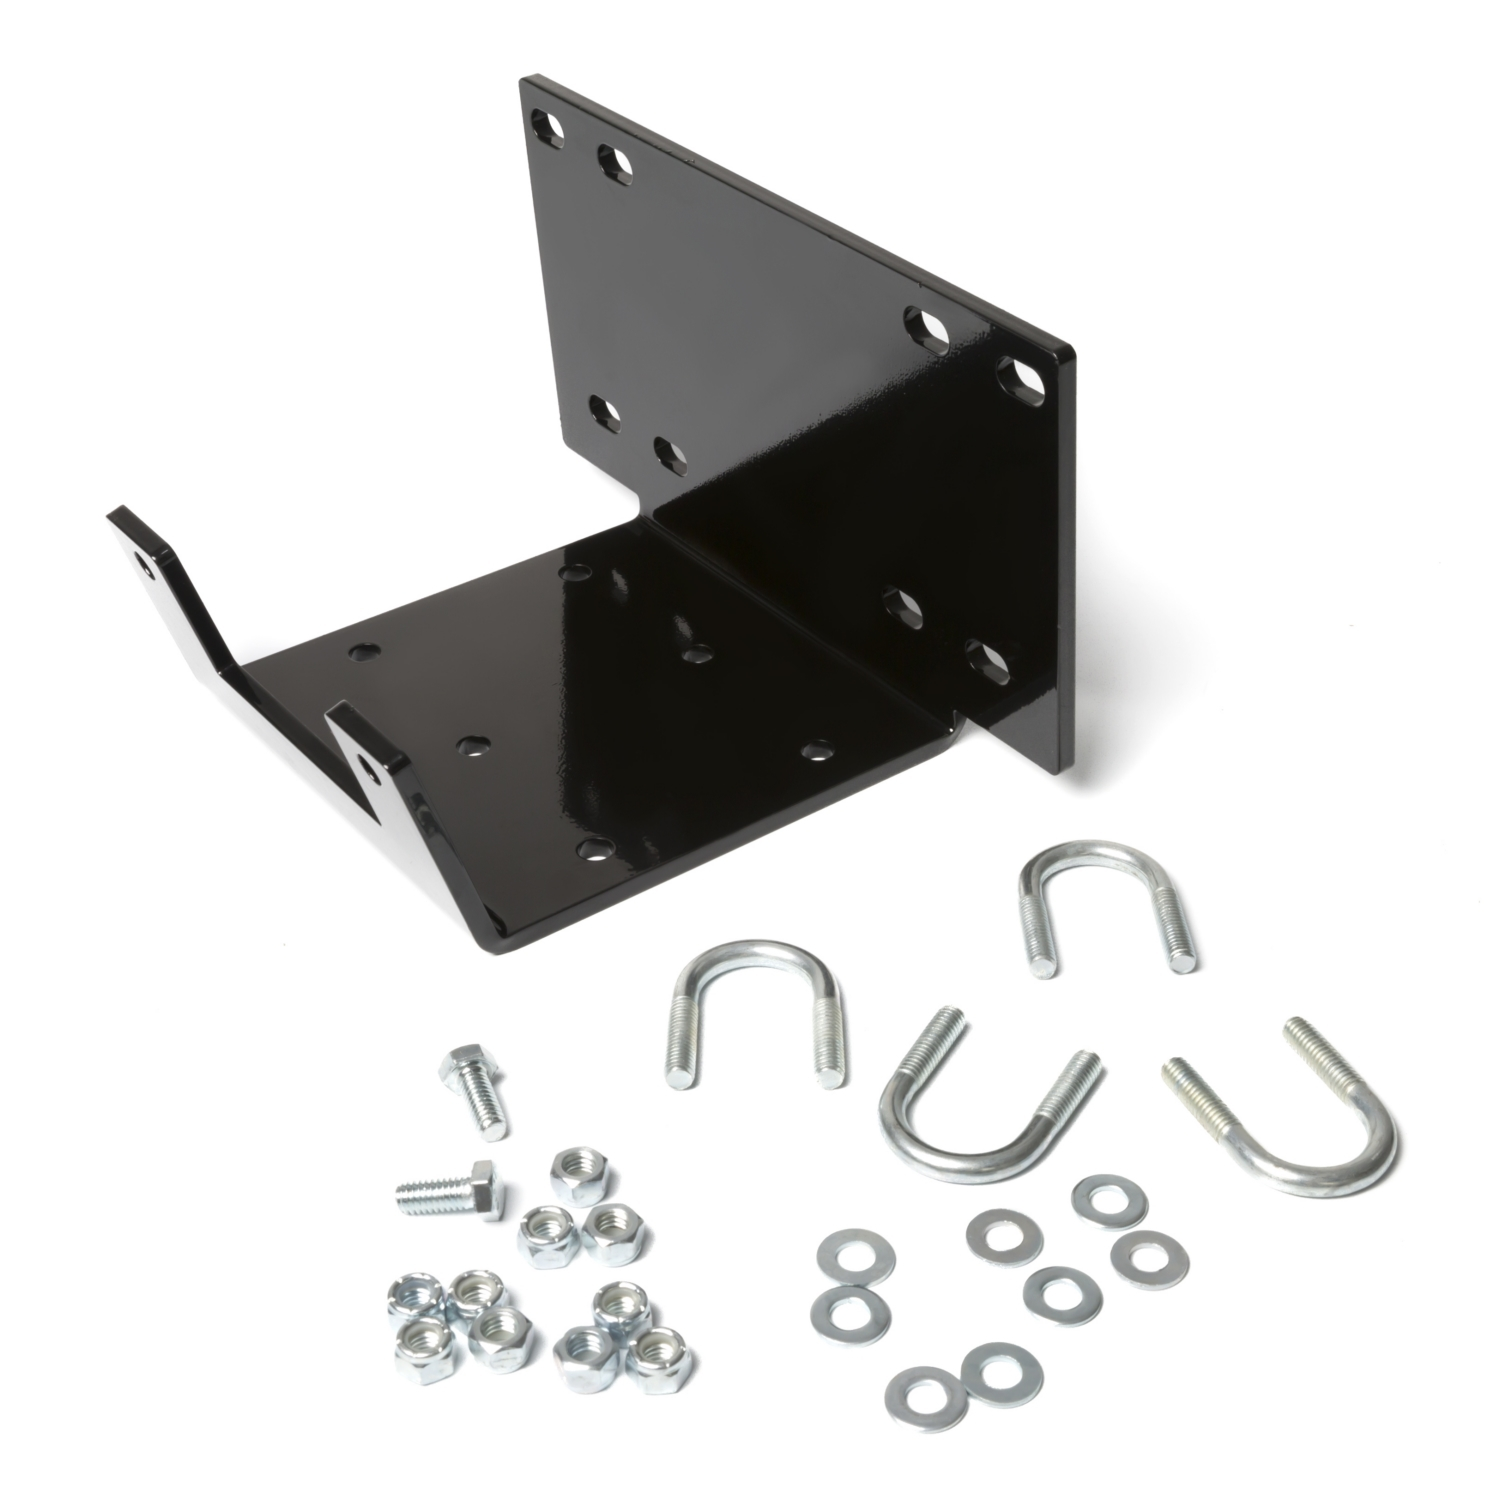 small resolution of fuse atv winch mount kit 177042